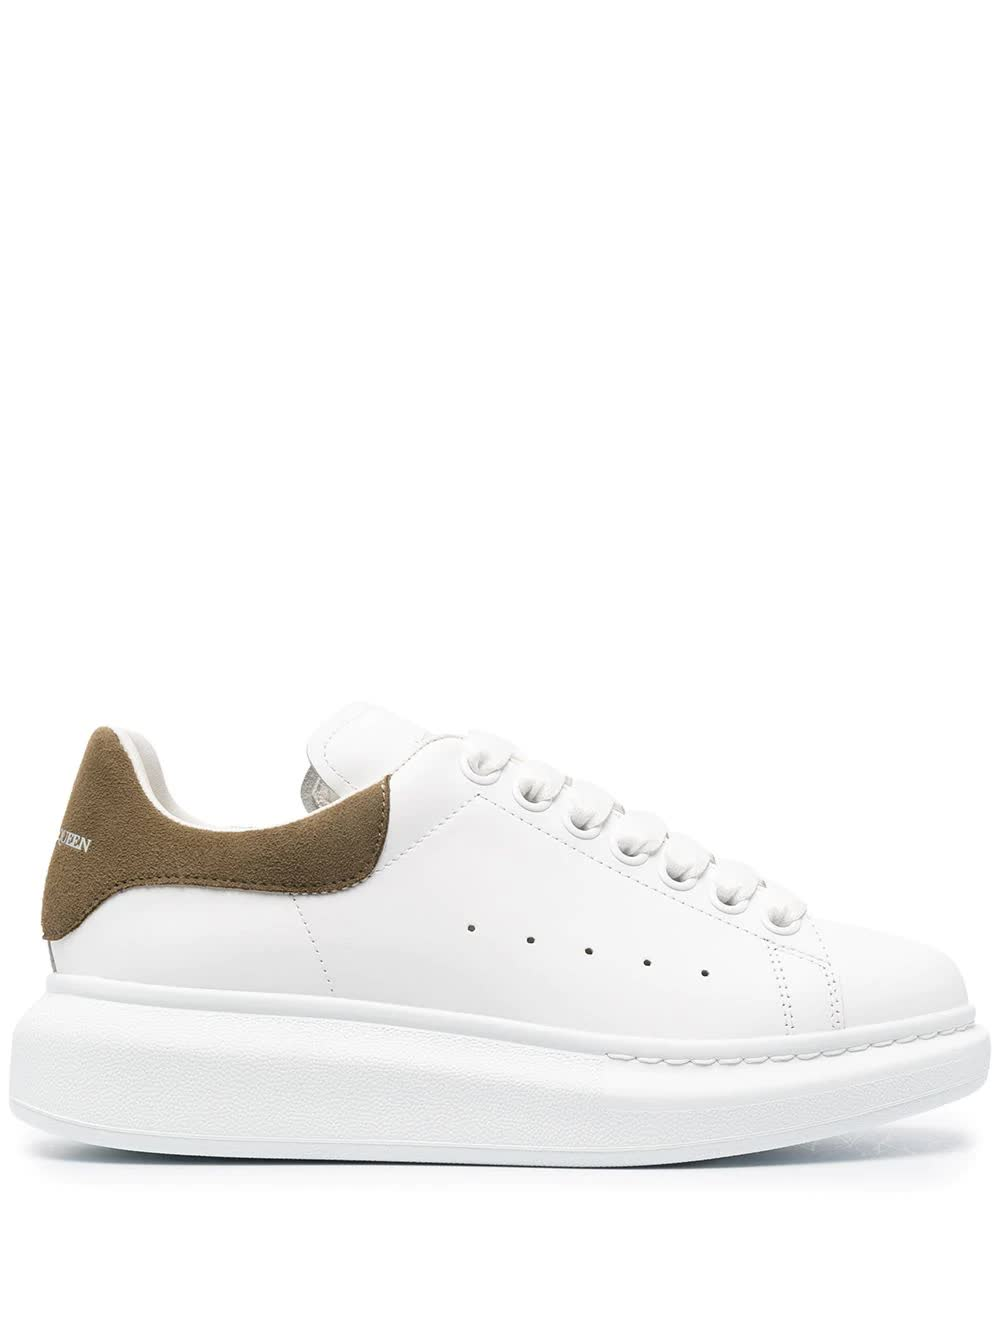 ALEXANDER MCQUEEN Woman White And Khaki Green Oversize Sneakers